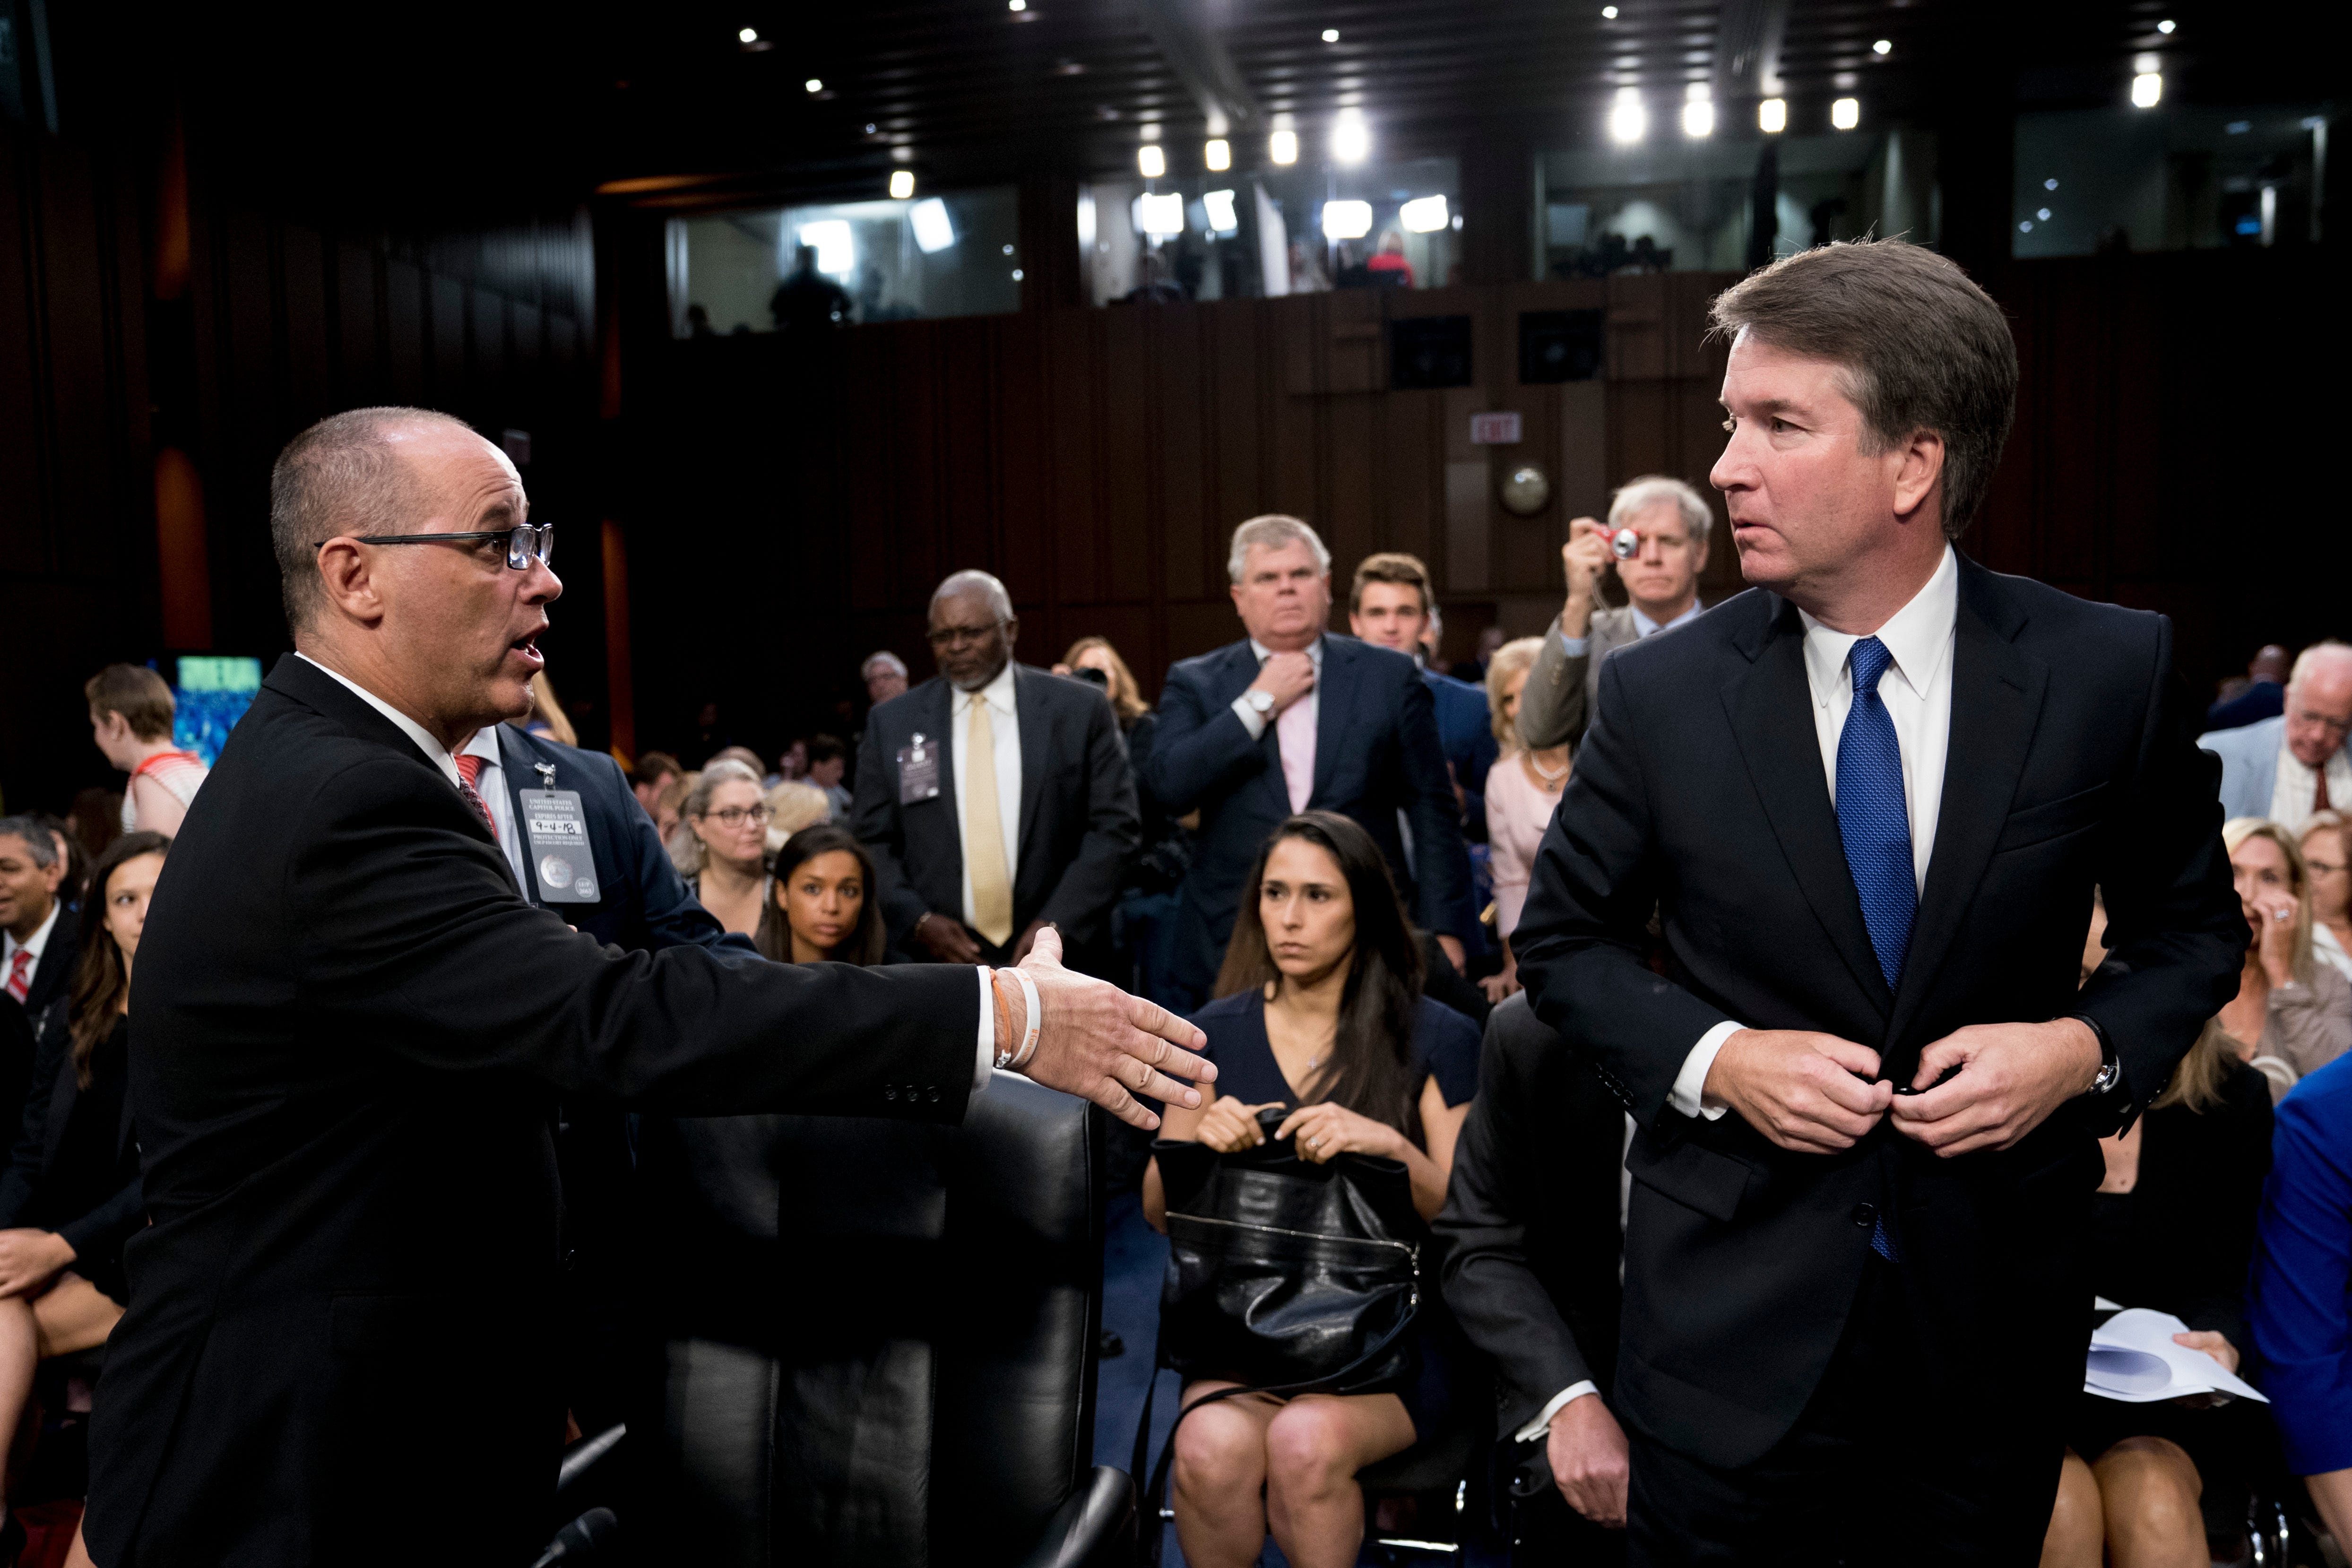 Parkland victim's father tries to shake Brett Kavanaugh's hand during hearing